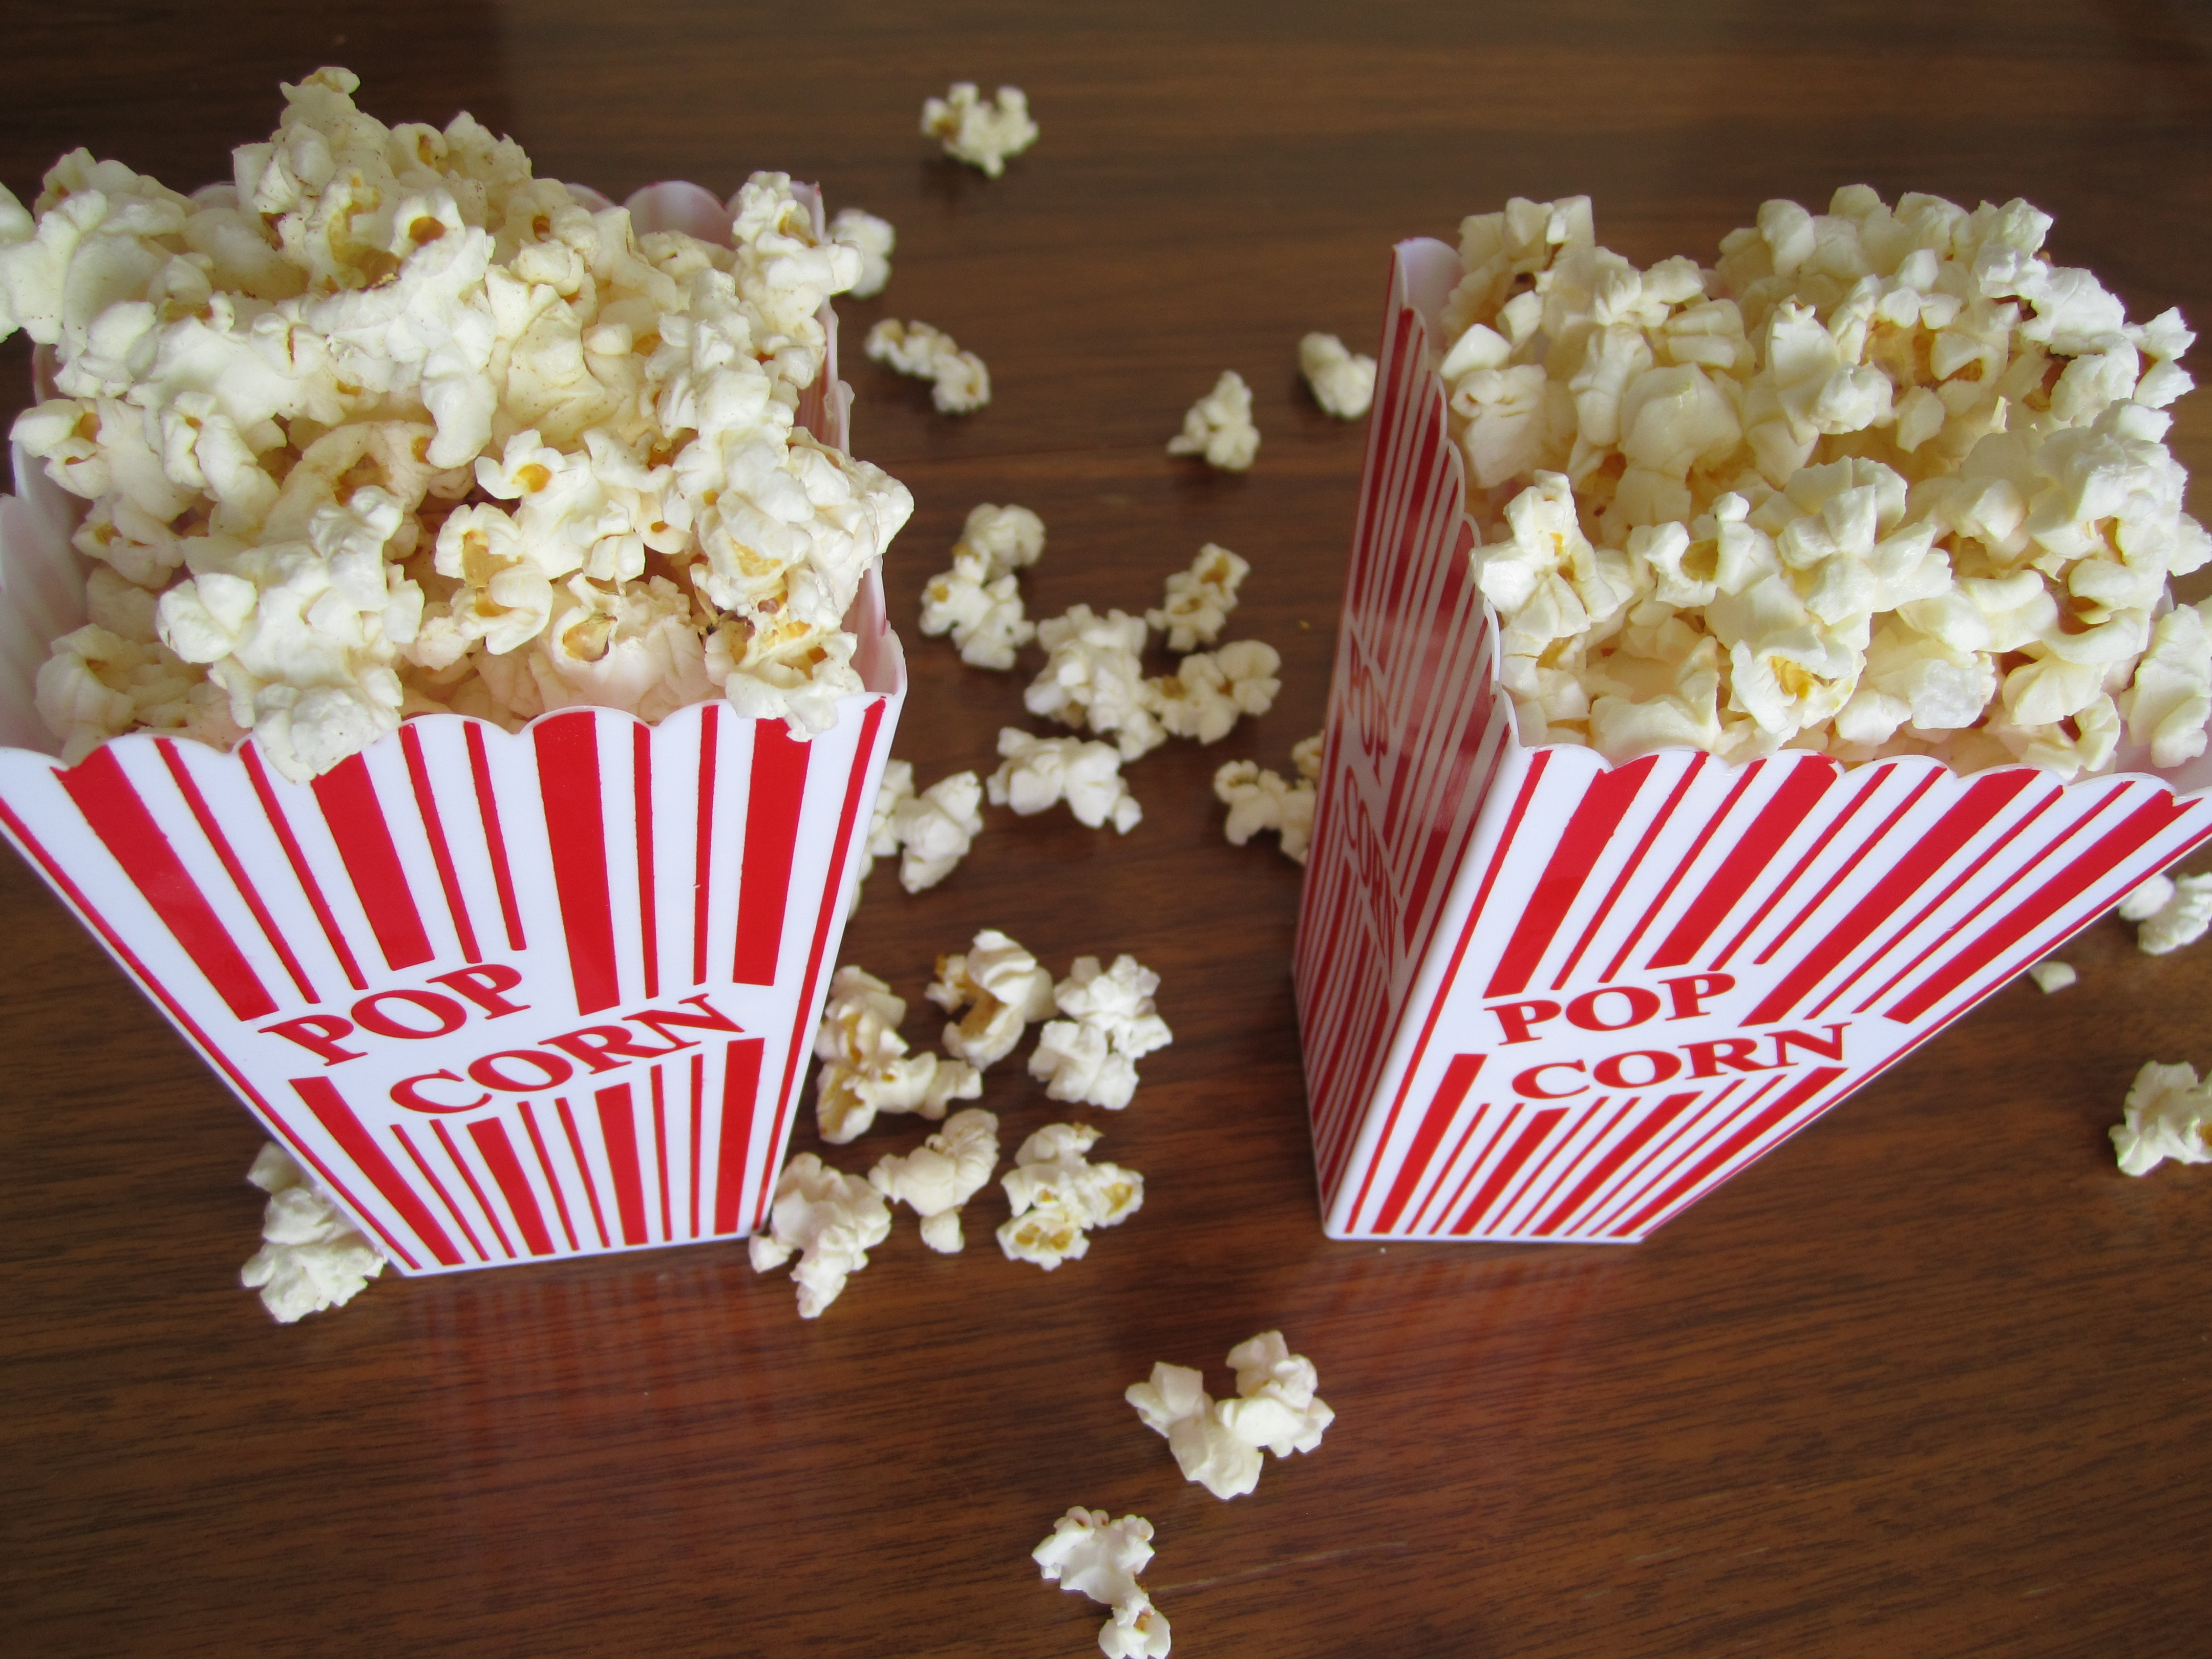 Microwave Popcorn » Homemade Microwave popcorn on the left, Orville ...